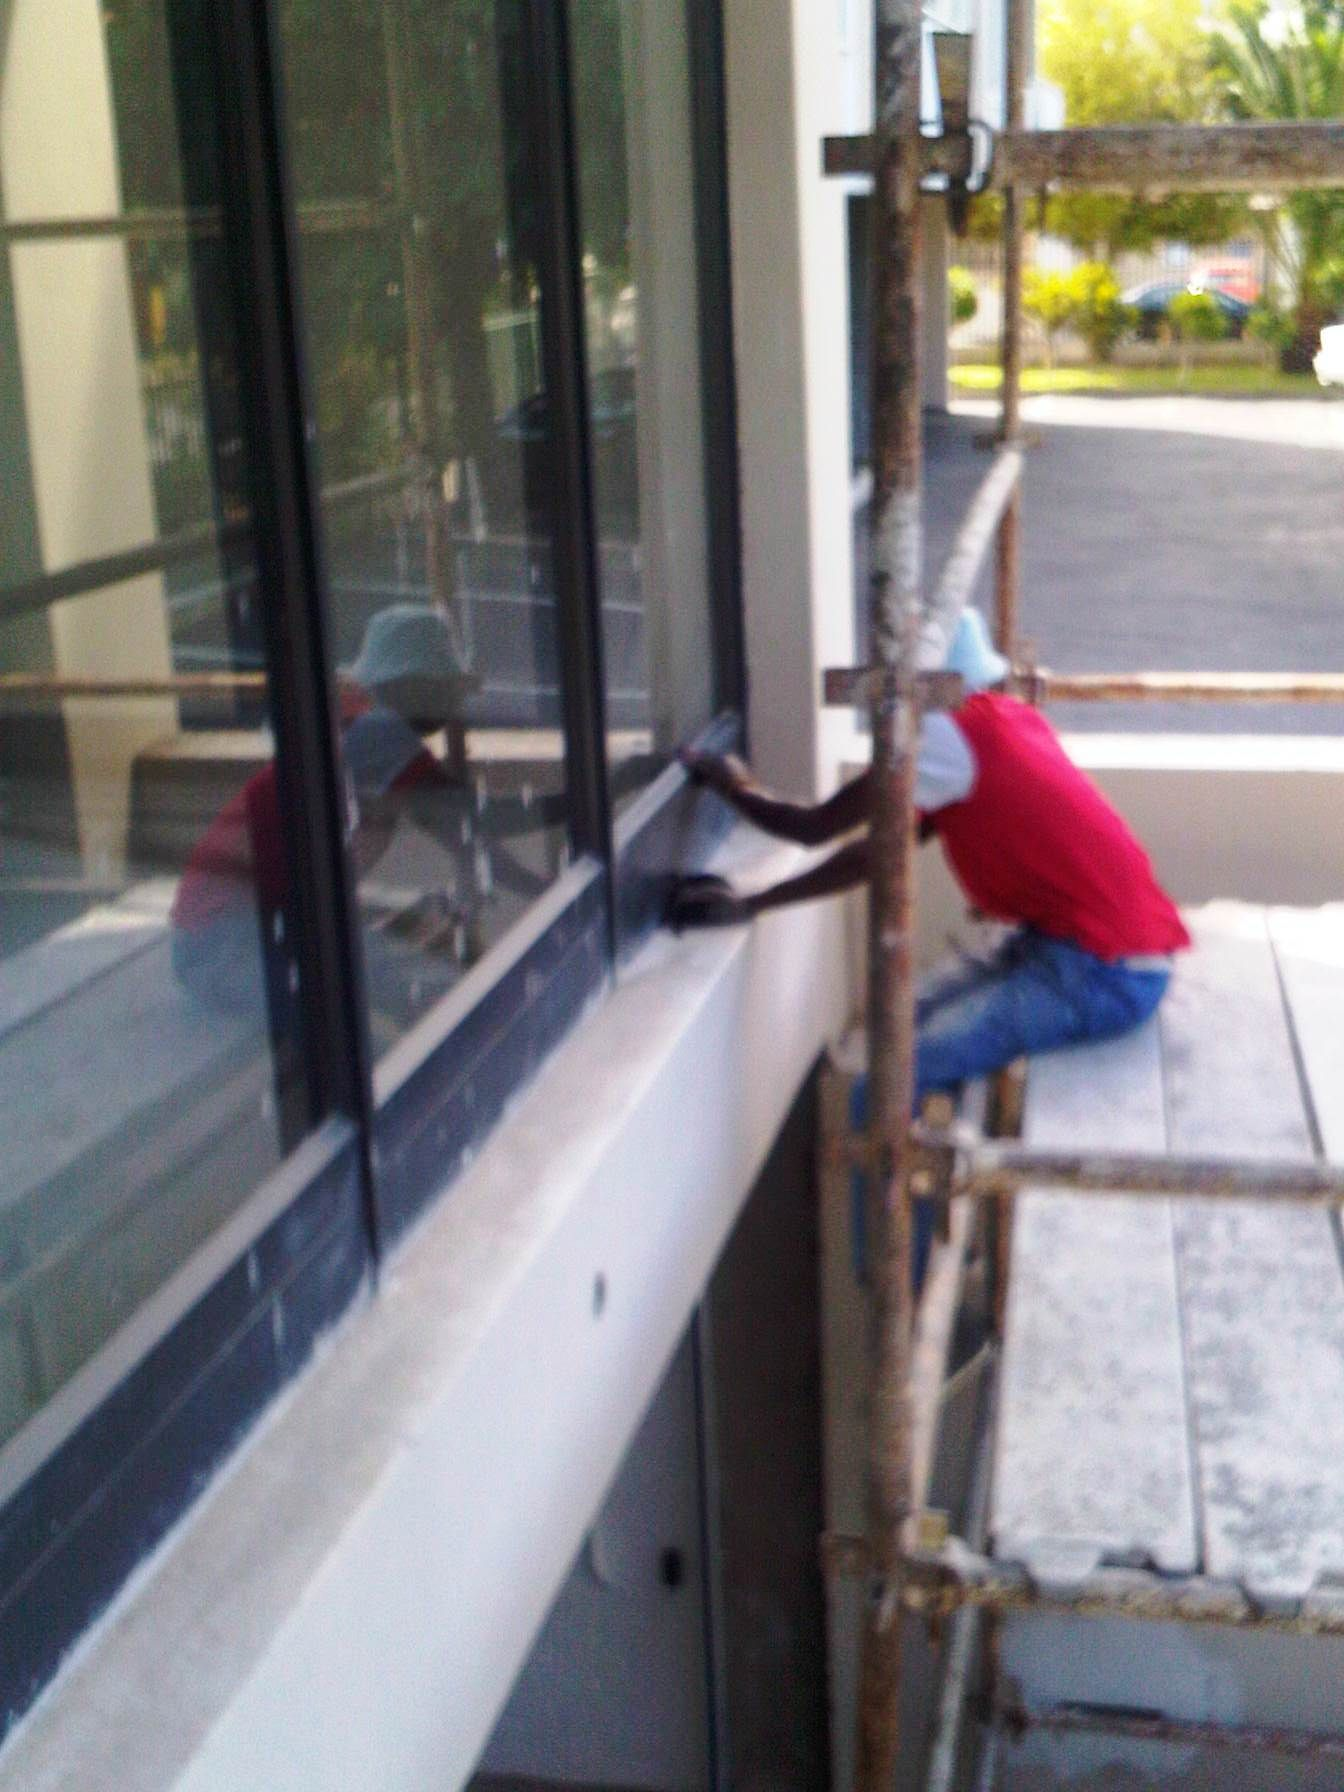 Our right hand man - Fred - resurfacing window frames at a building ...